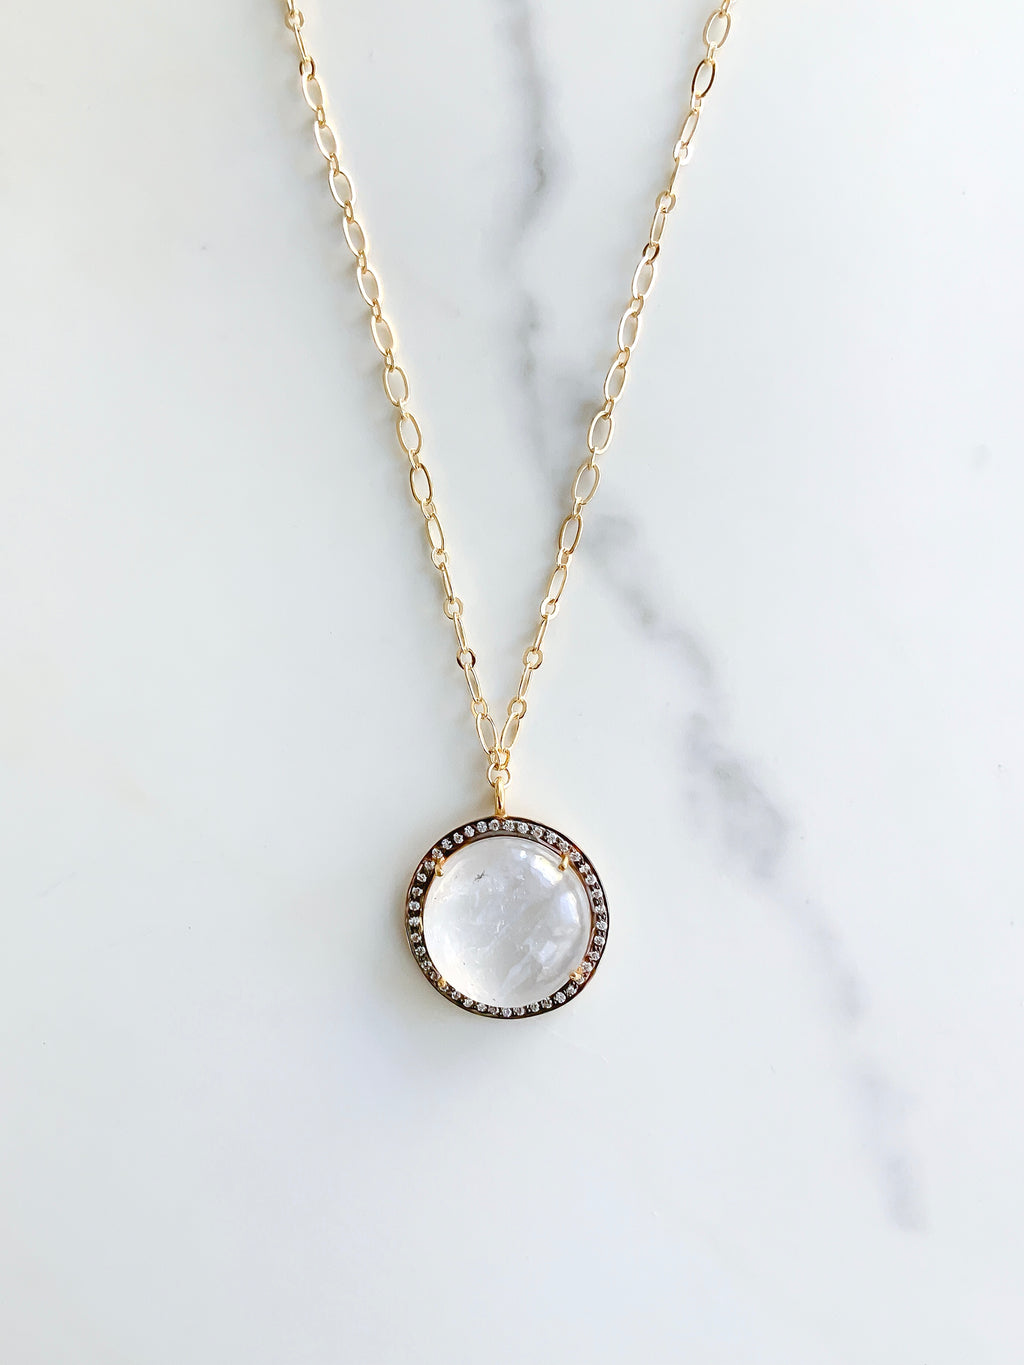 The Belle of the Ball Moonstone Necklace